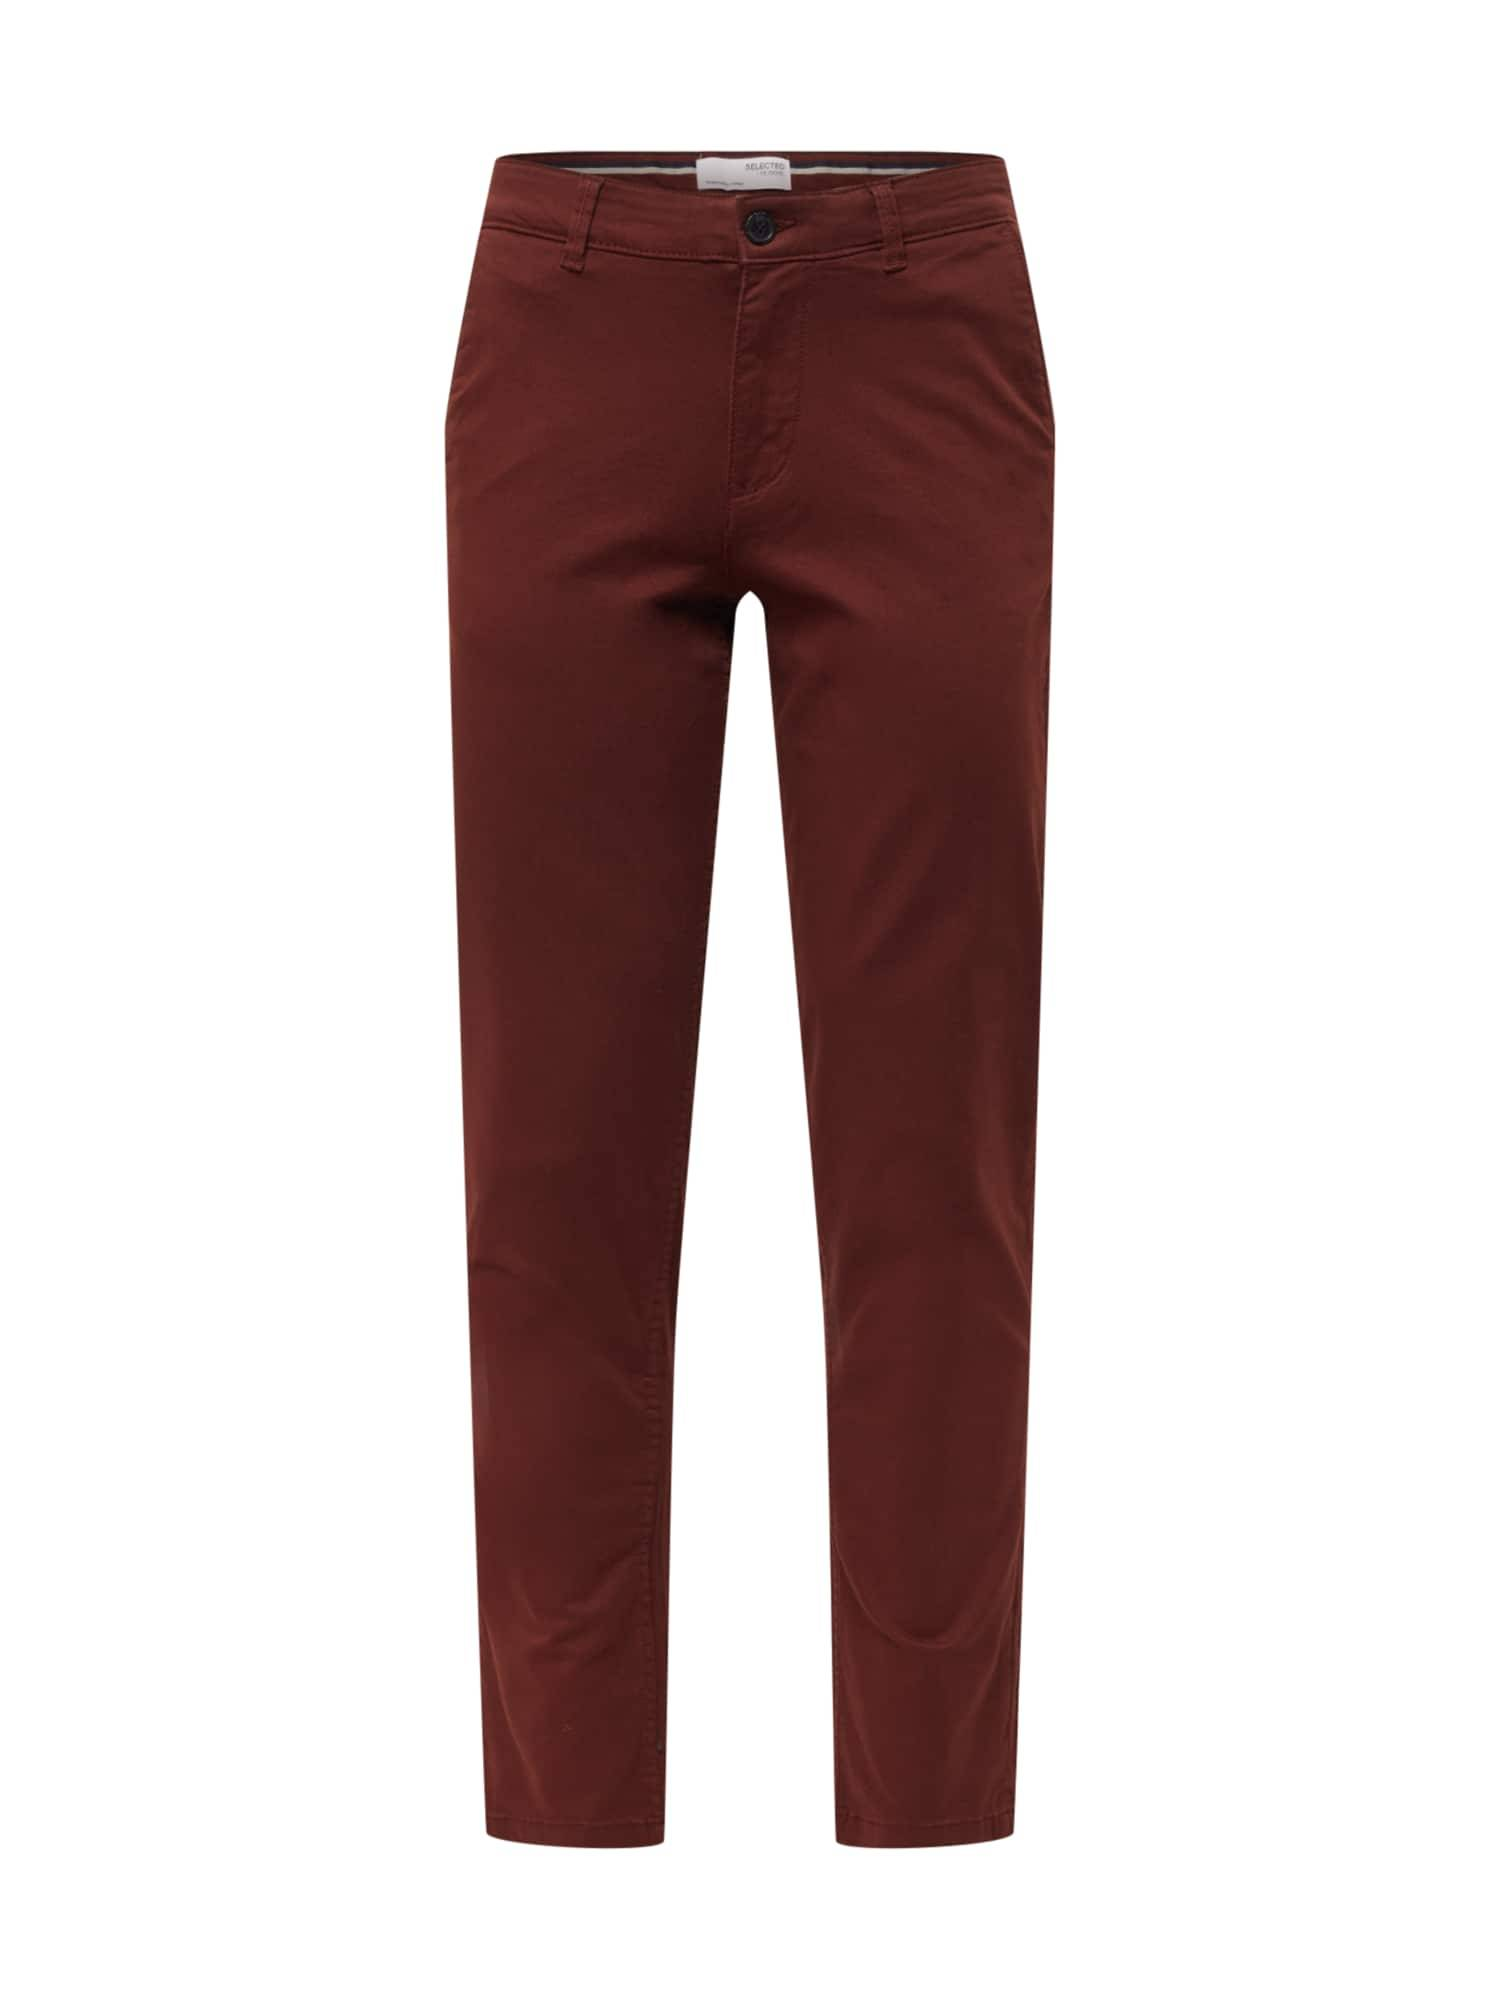 SELECTED HOMME Pantalon chino 'NEW PARIS'  - Marron - Taille: 29 - male